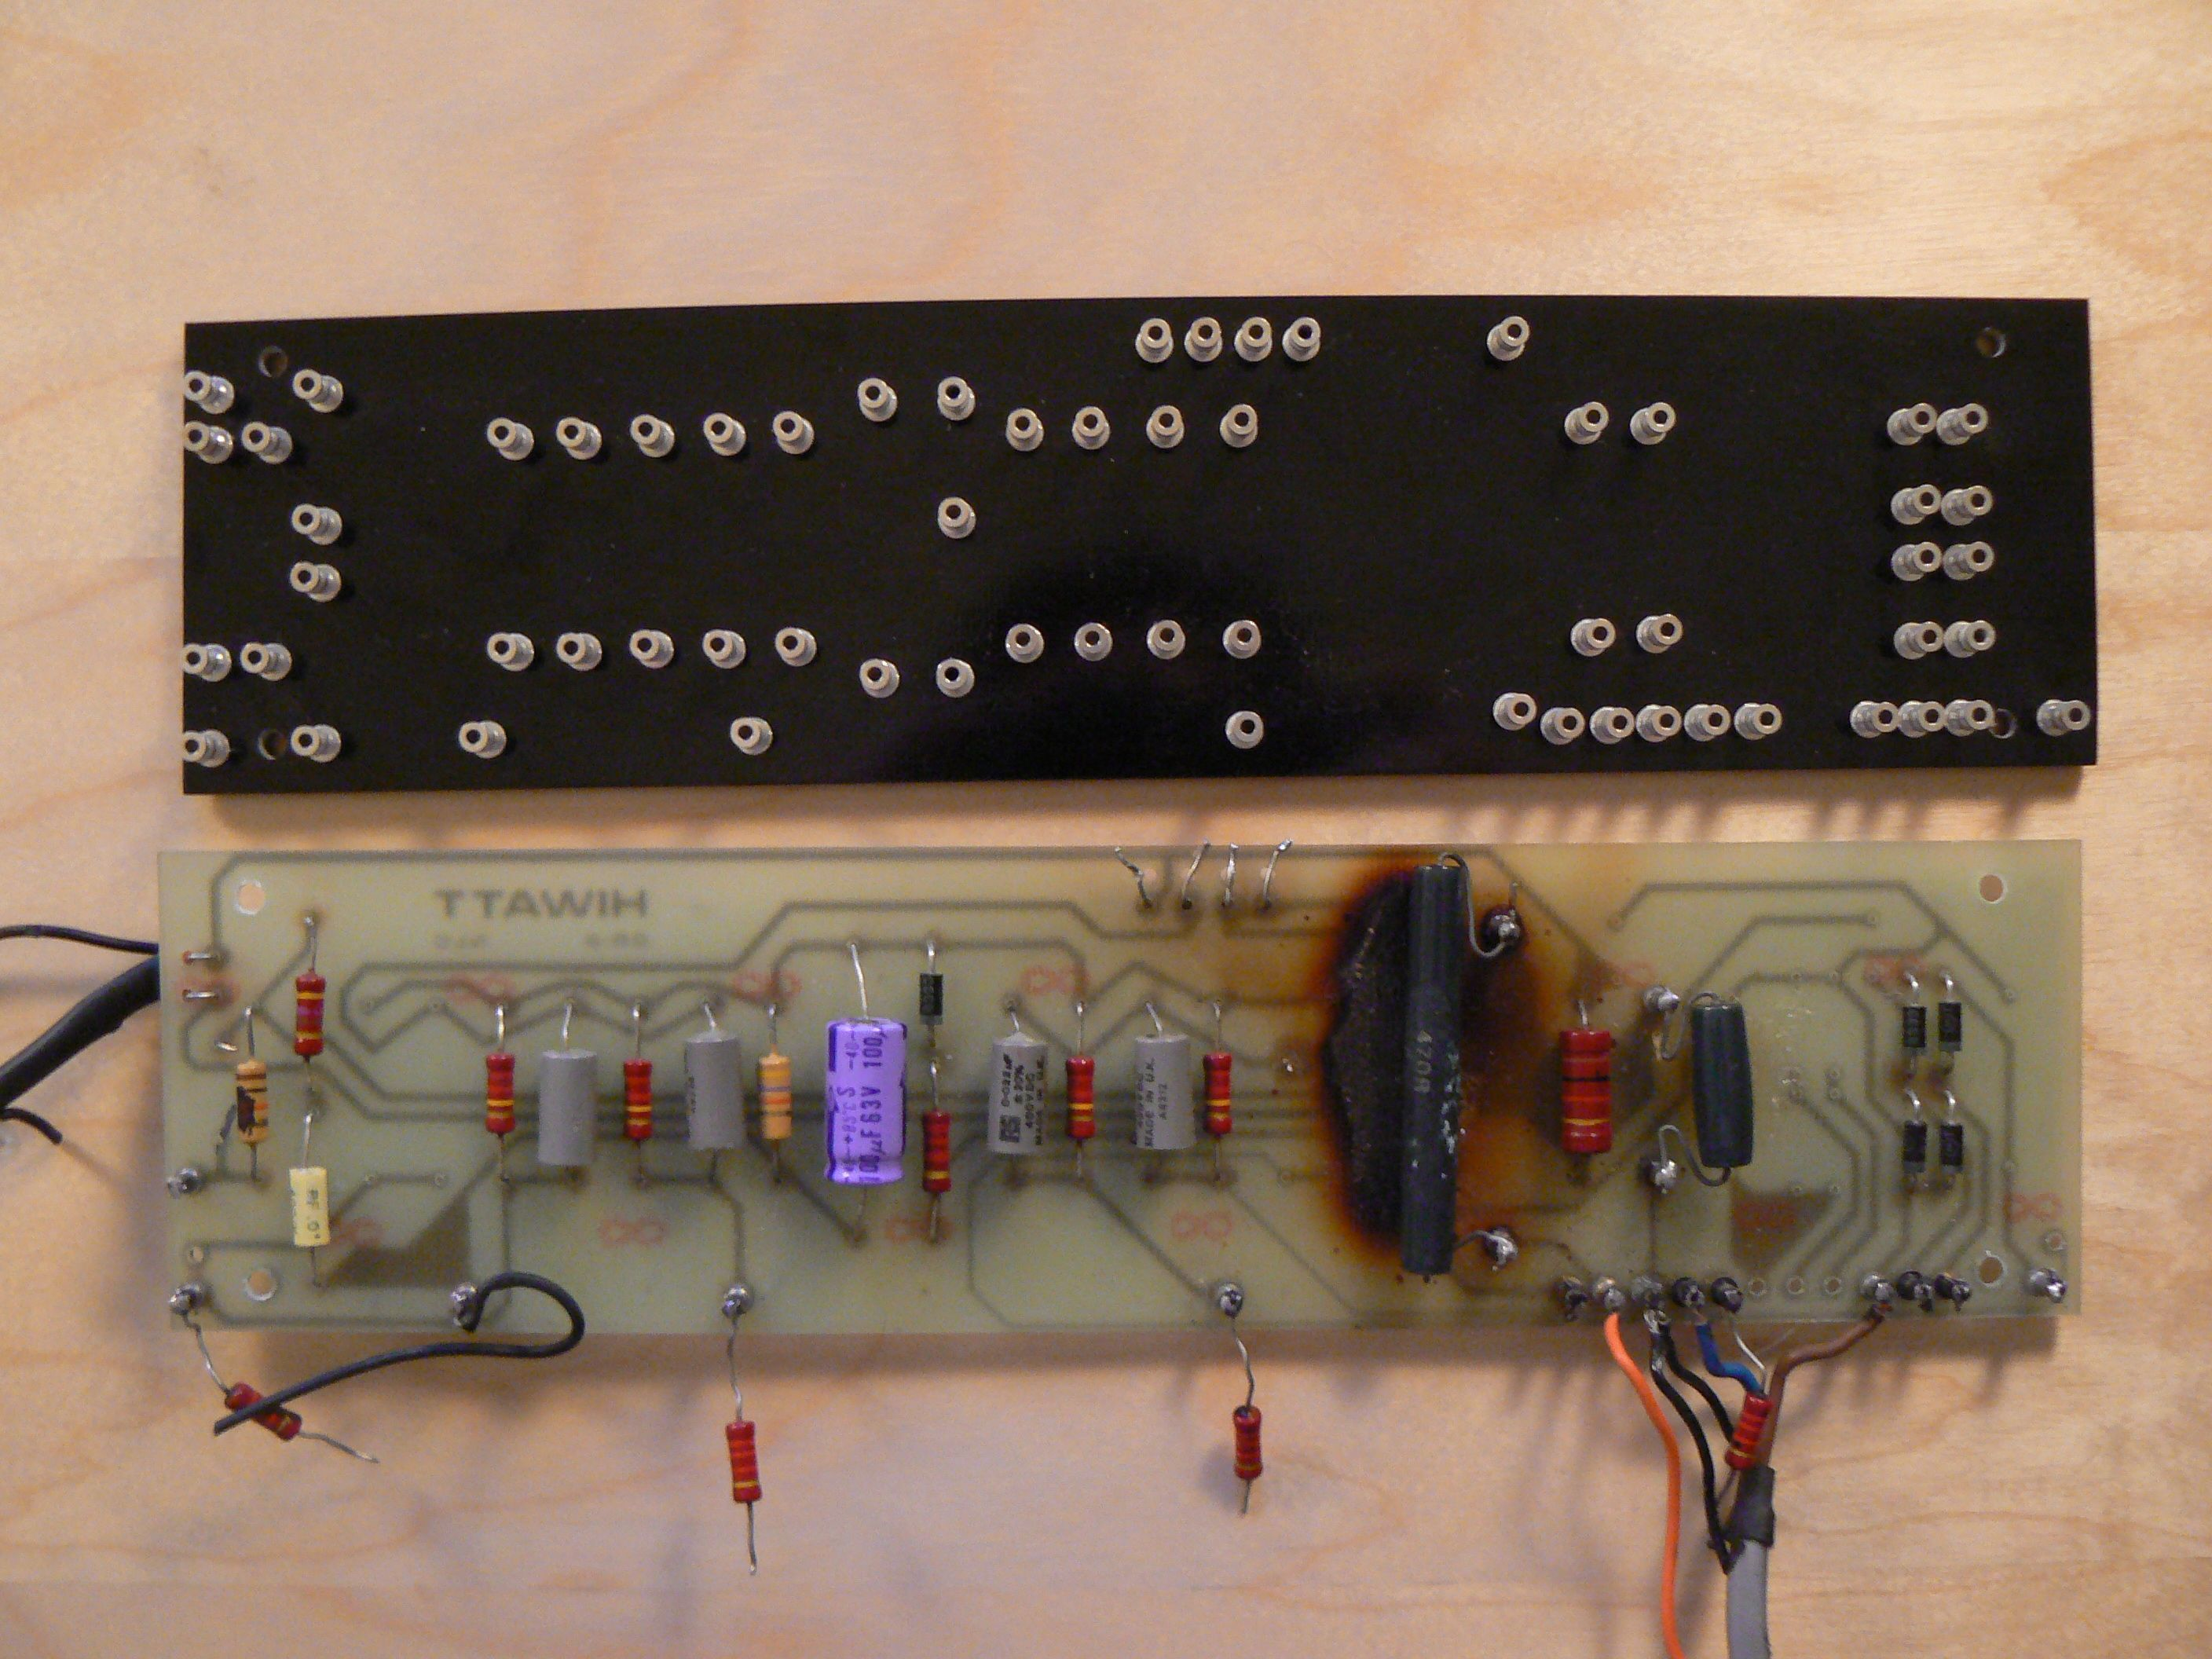 hight resolution of hiwatt ol103 restoration old burnt power supply board and new replacement turret board